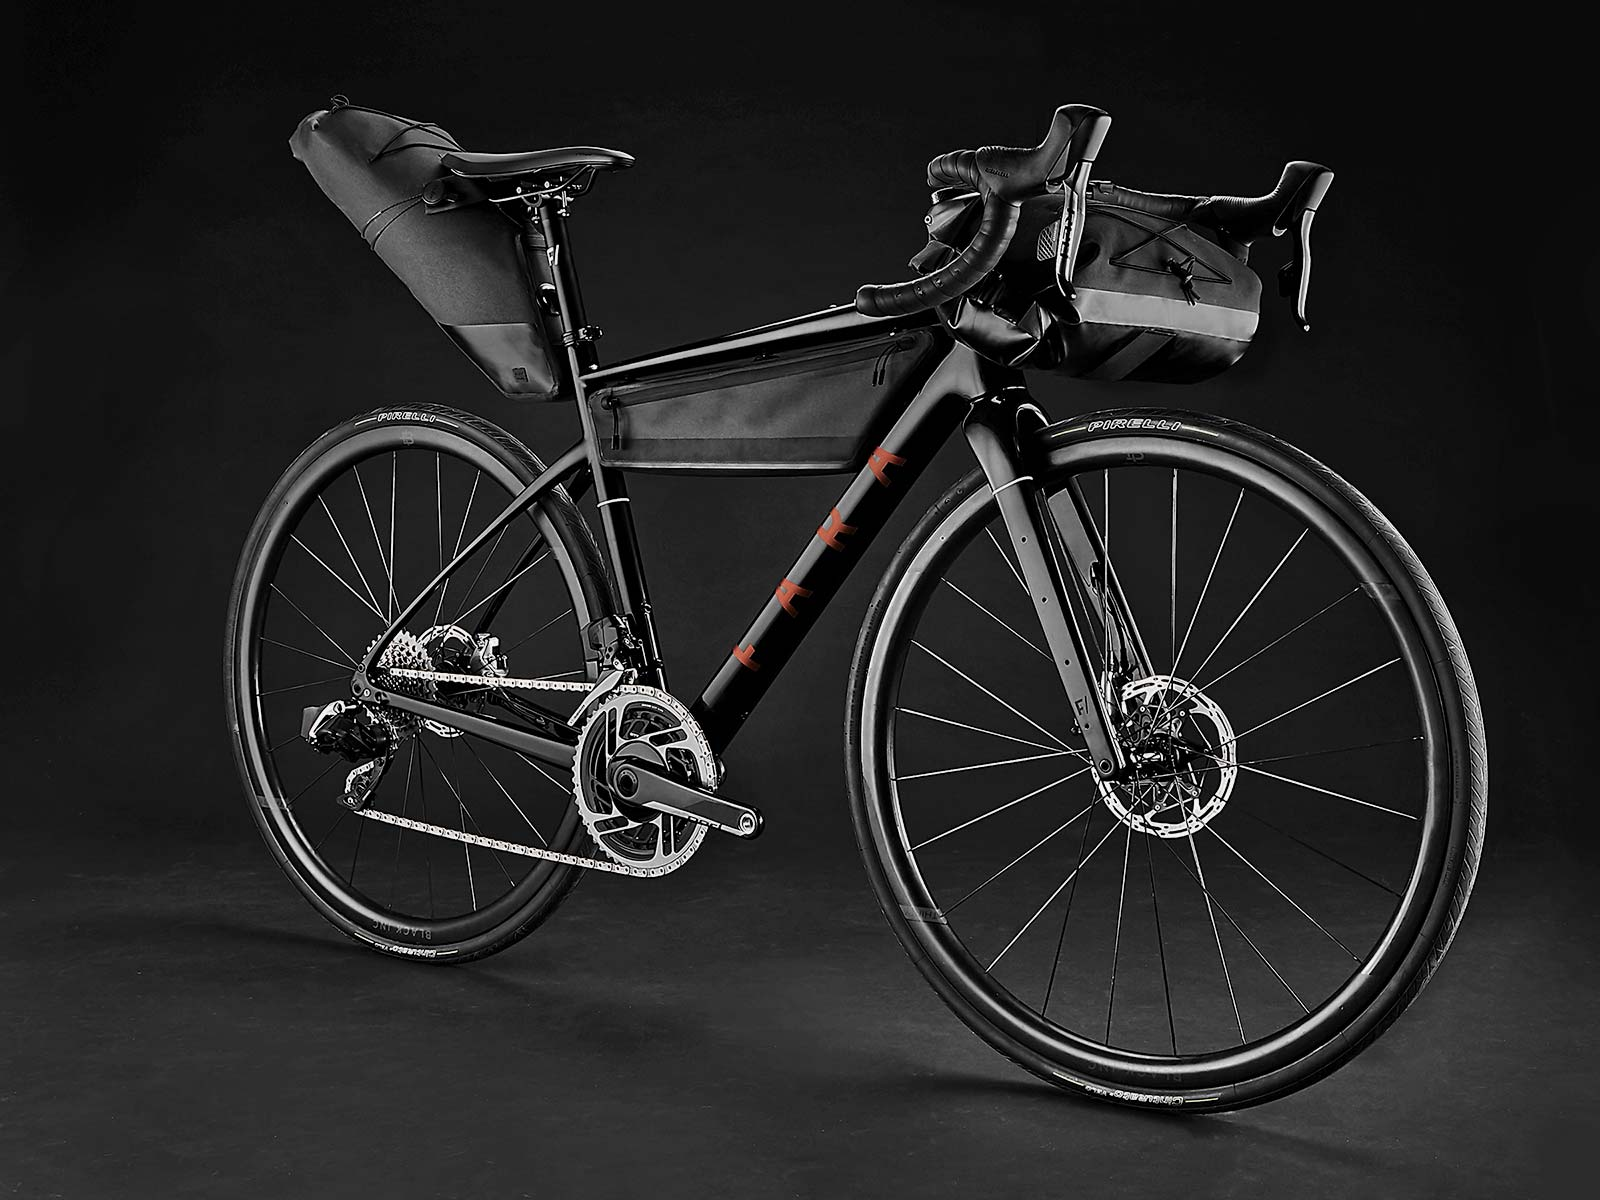 2021 Fara F-AR all-road bike ltd Signature Edition, carbon endurance gravel road bike with integrated bikepacking bags,complete angled